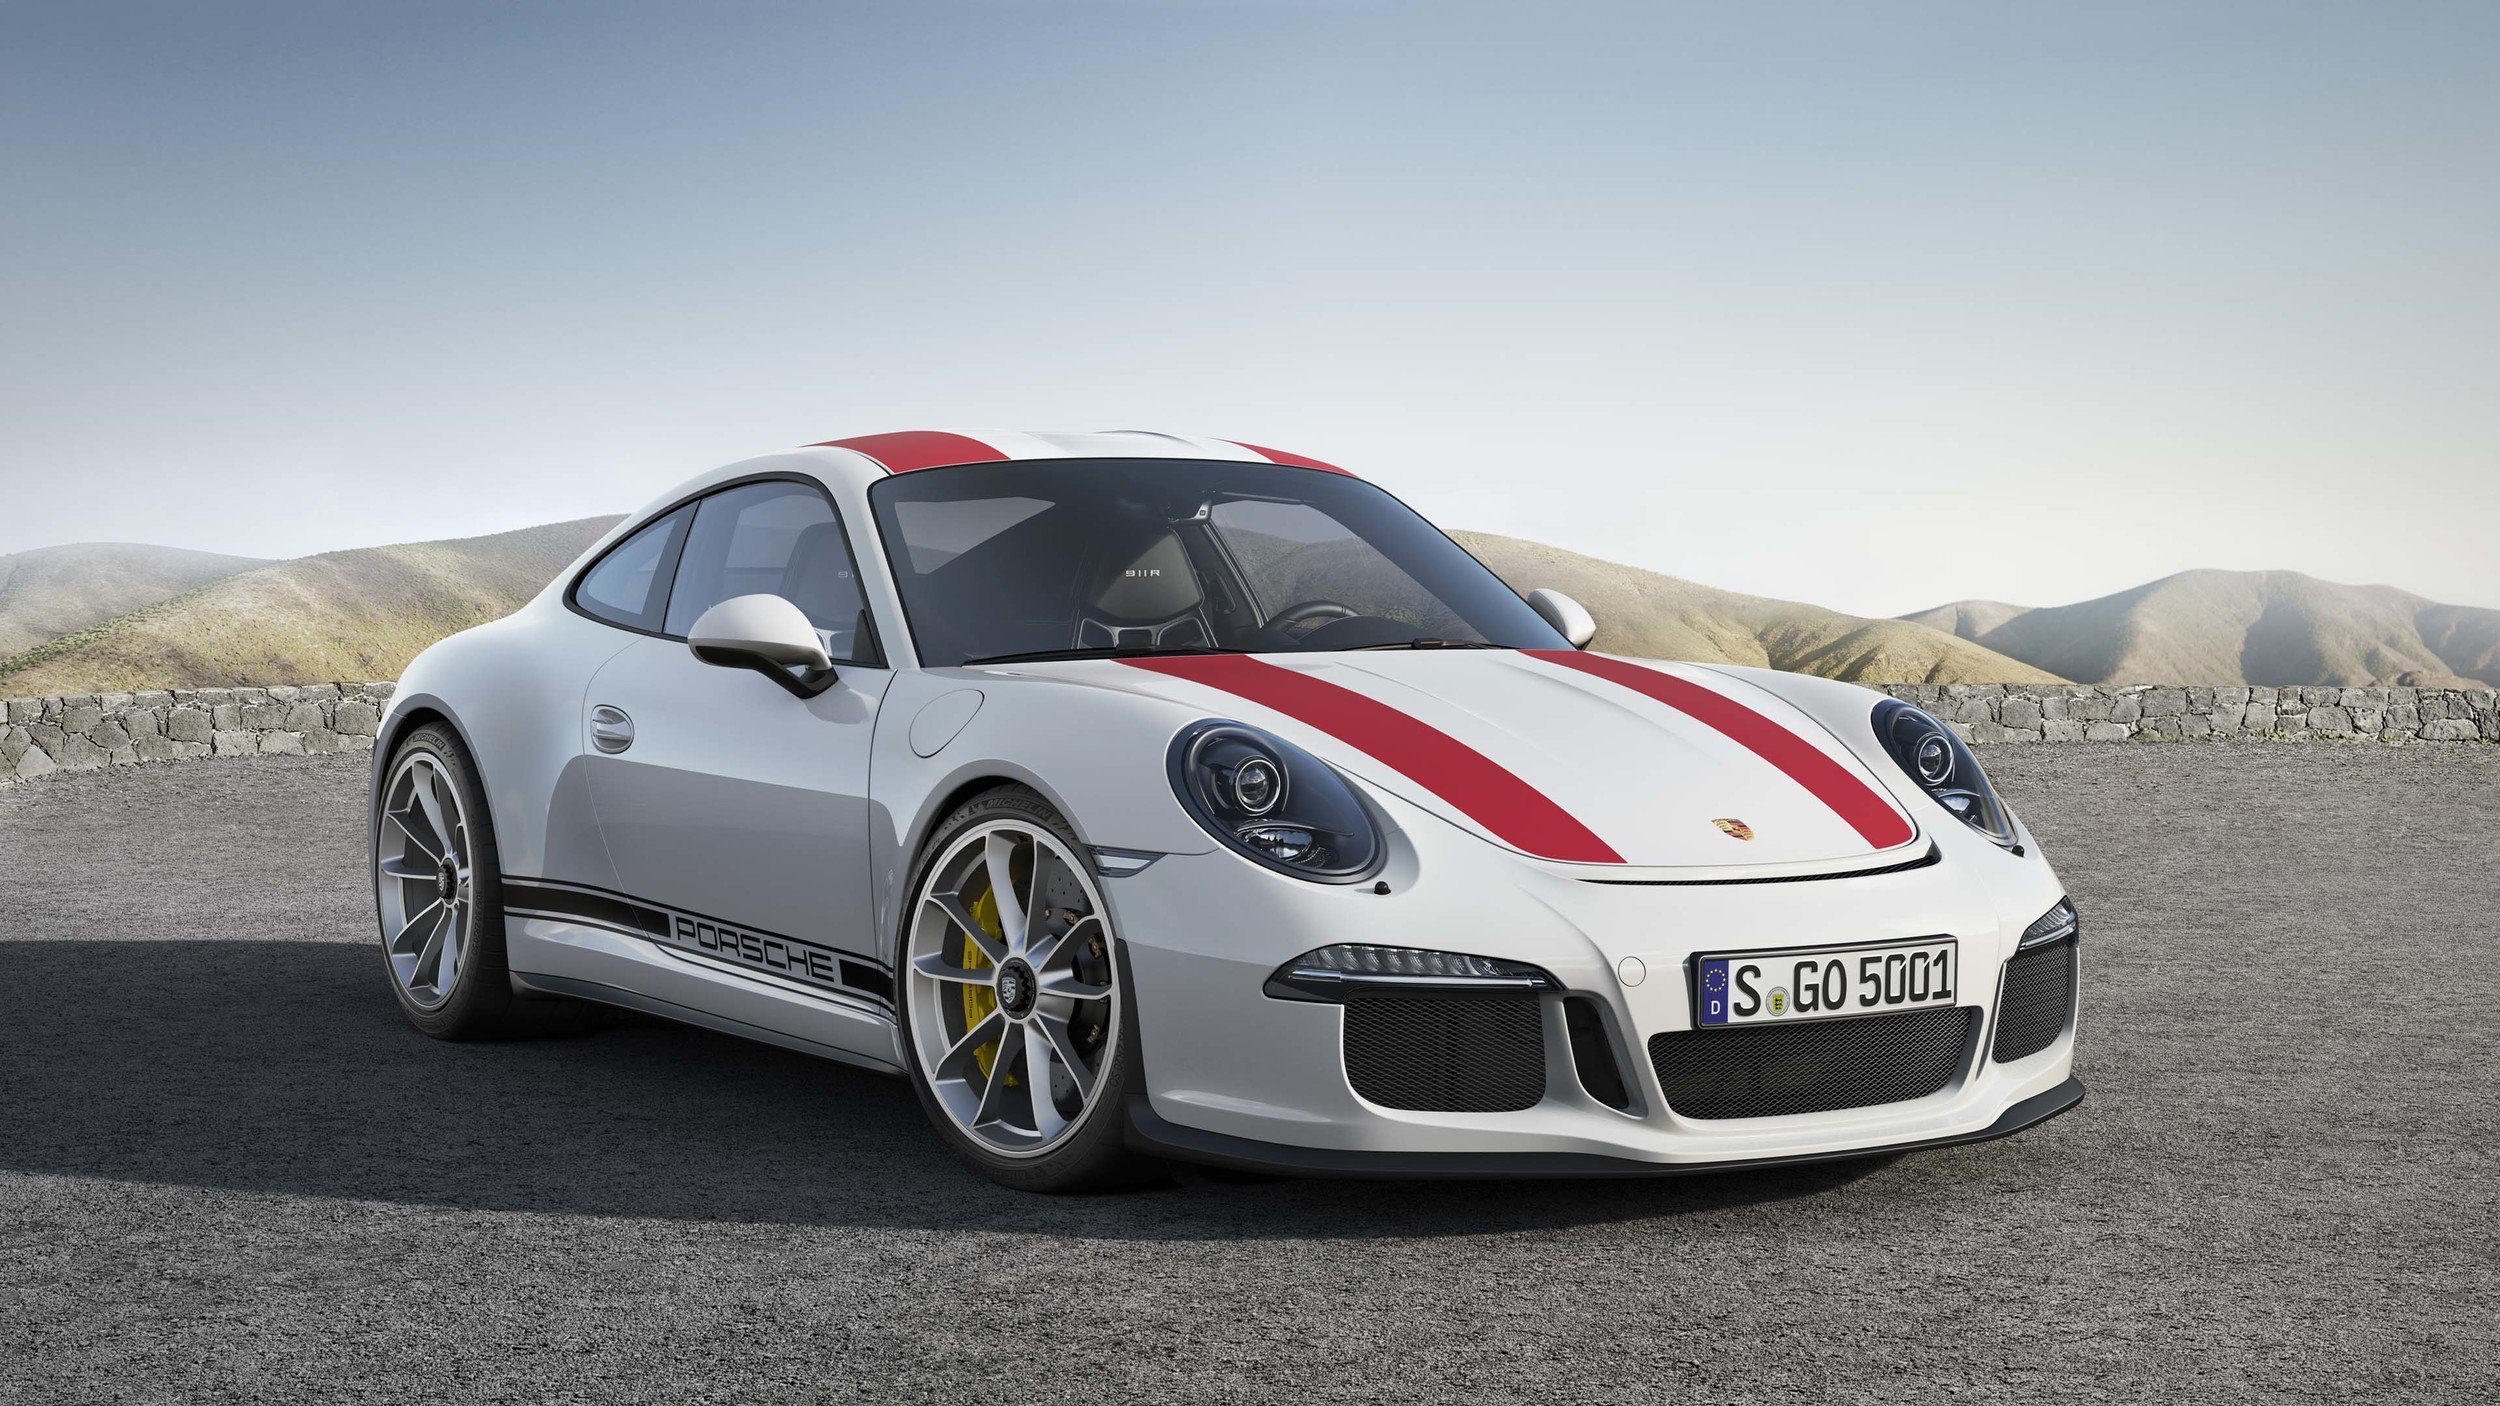 This Porsche 911 R Is Selling for Over $1.3M On The Used Car Market